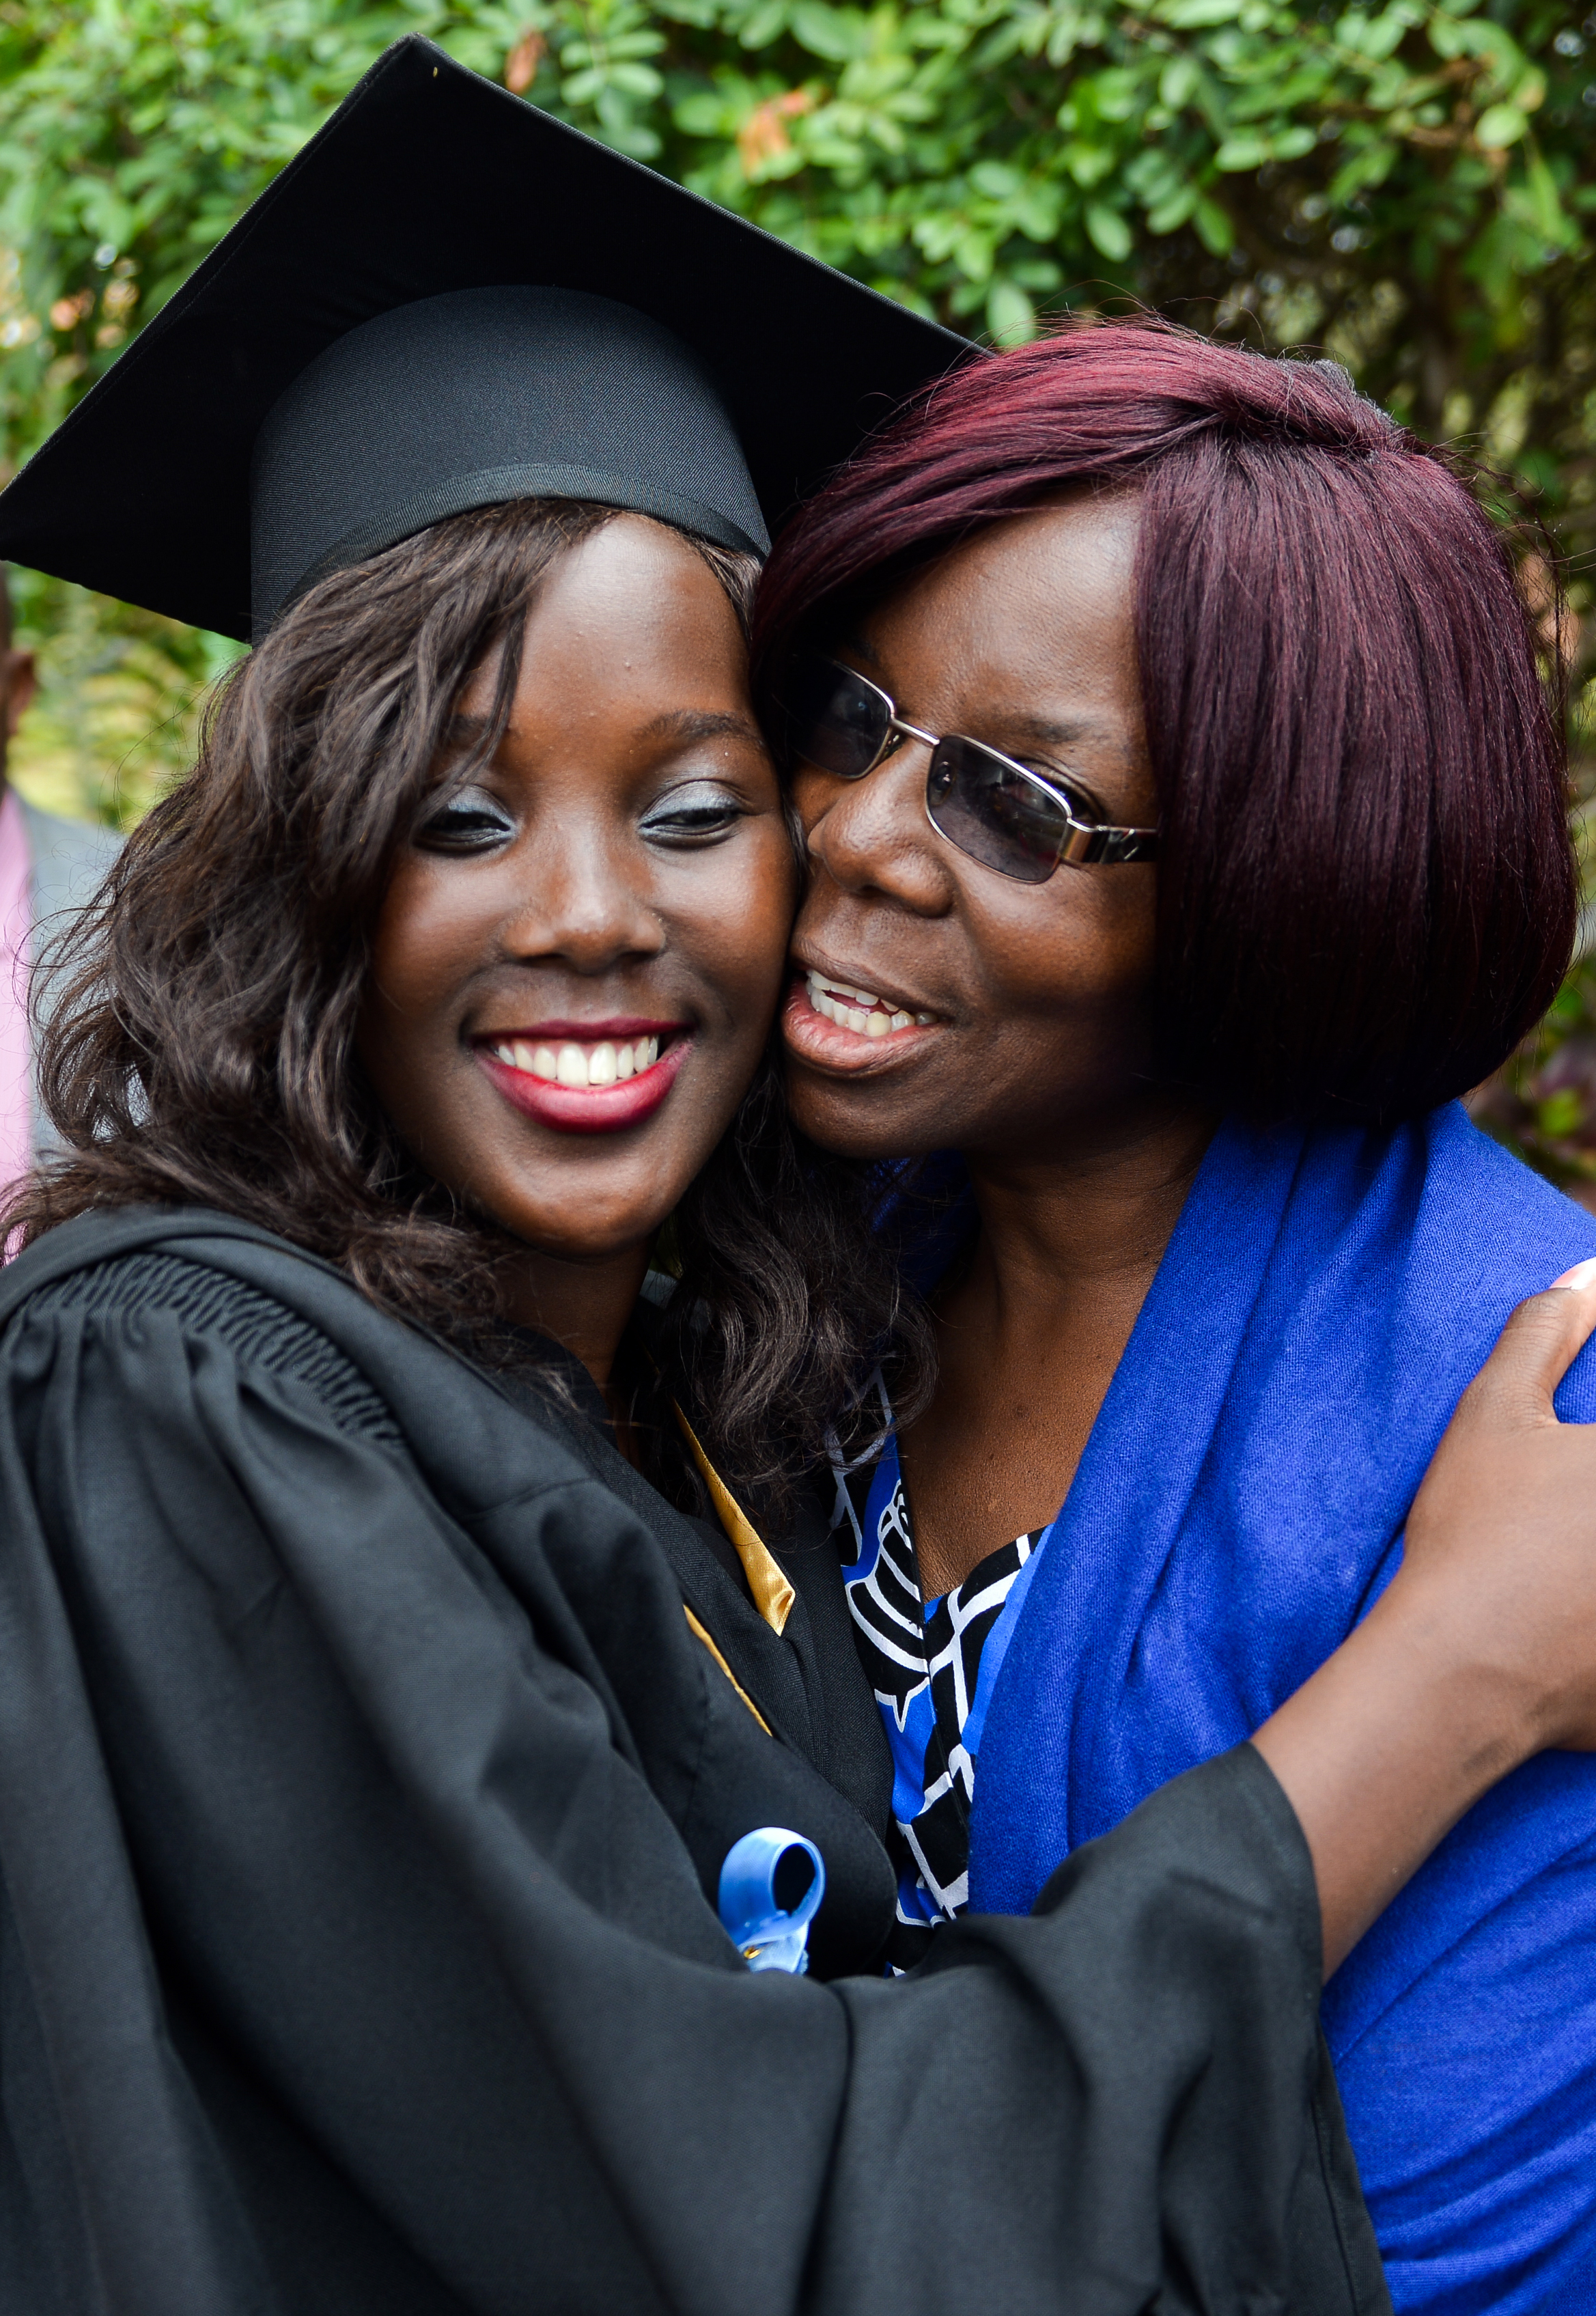 Nyasha Lynette Muropa (left) receives a hug from her mother during the 2017 commencement ceremonies at Africa University, a United Methodist school in Mutare, Zimbabwe. Muropa received a Bachelor of Accounting degree. Photo courtesy of Africa University.